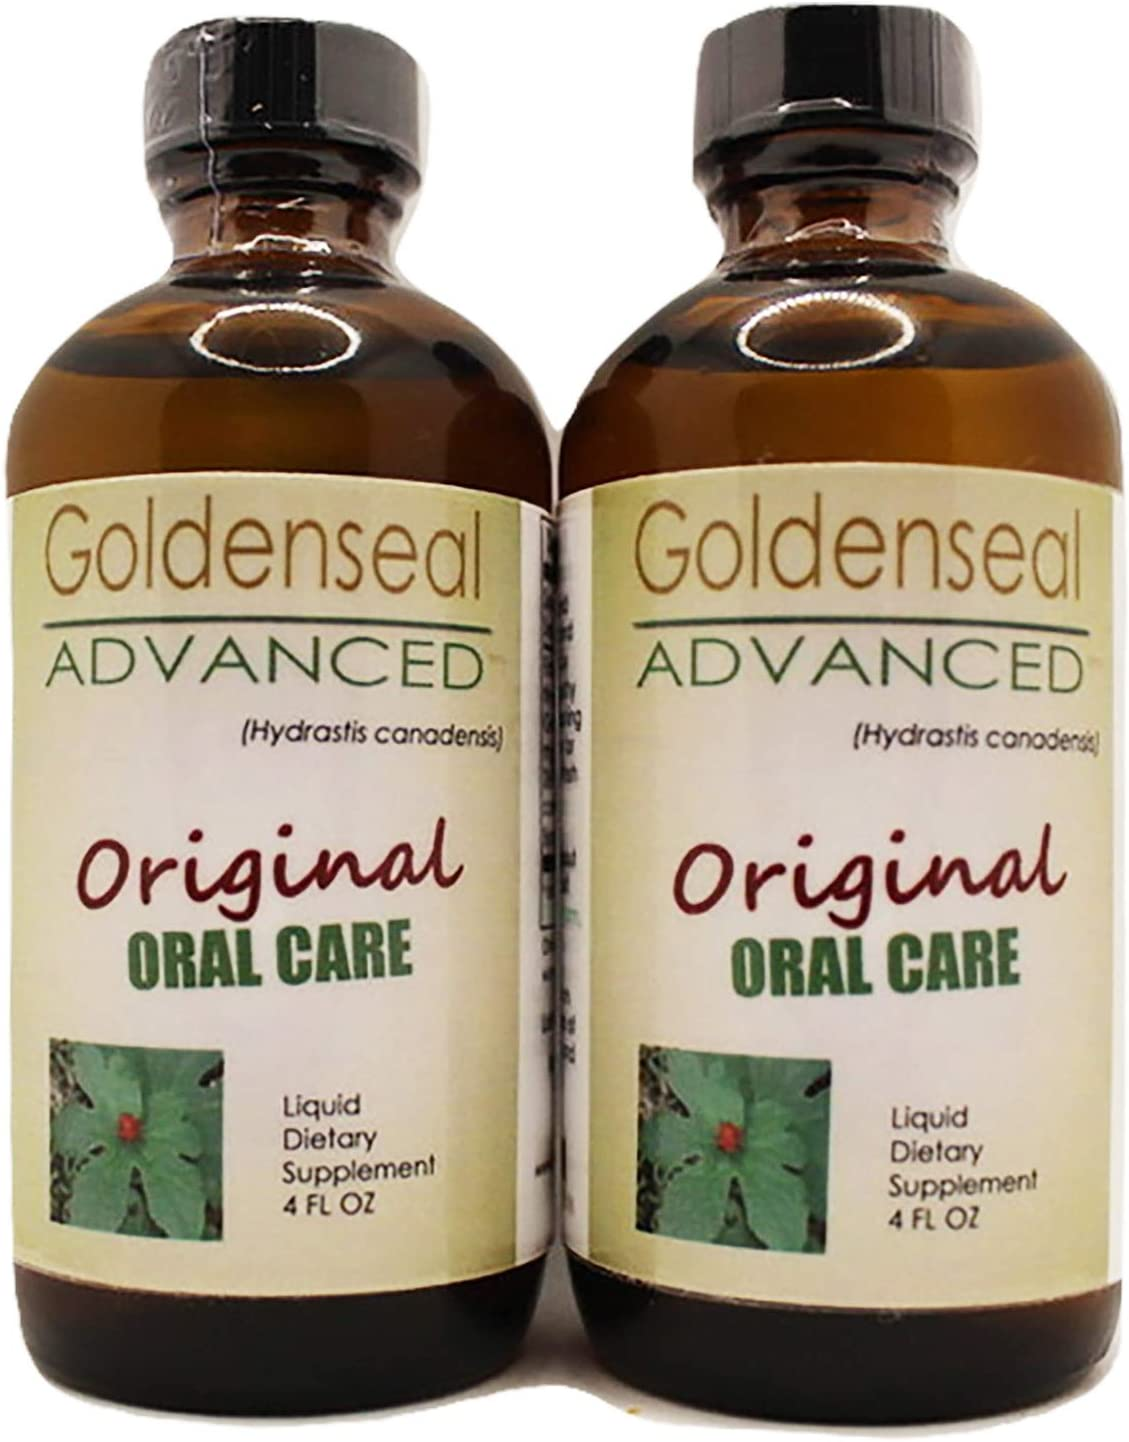 Goldenseal Oral Support New sales 4 oz. Canadensis Farm Dire All items in the store Hydrastis